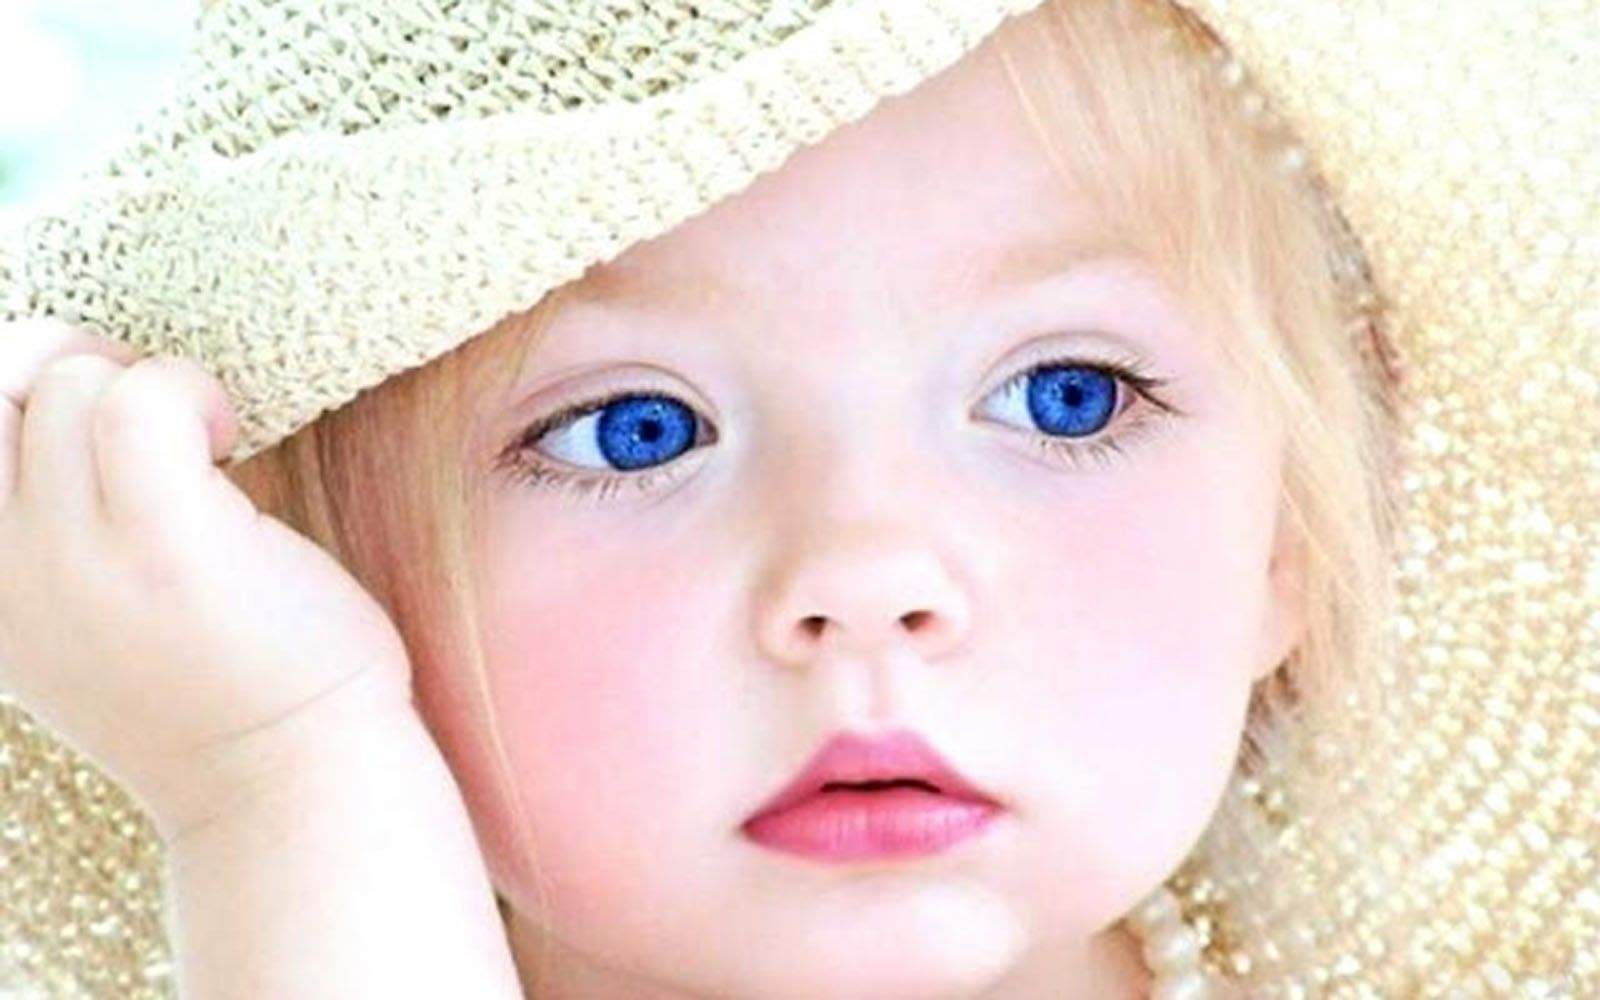 Pin By Carn Wille On Babies Kids Baby Girl Wallpaper Cute Baby Pictures Baby Girl Blue Eyes